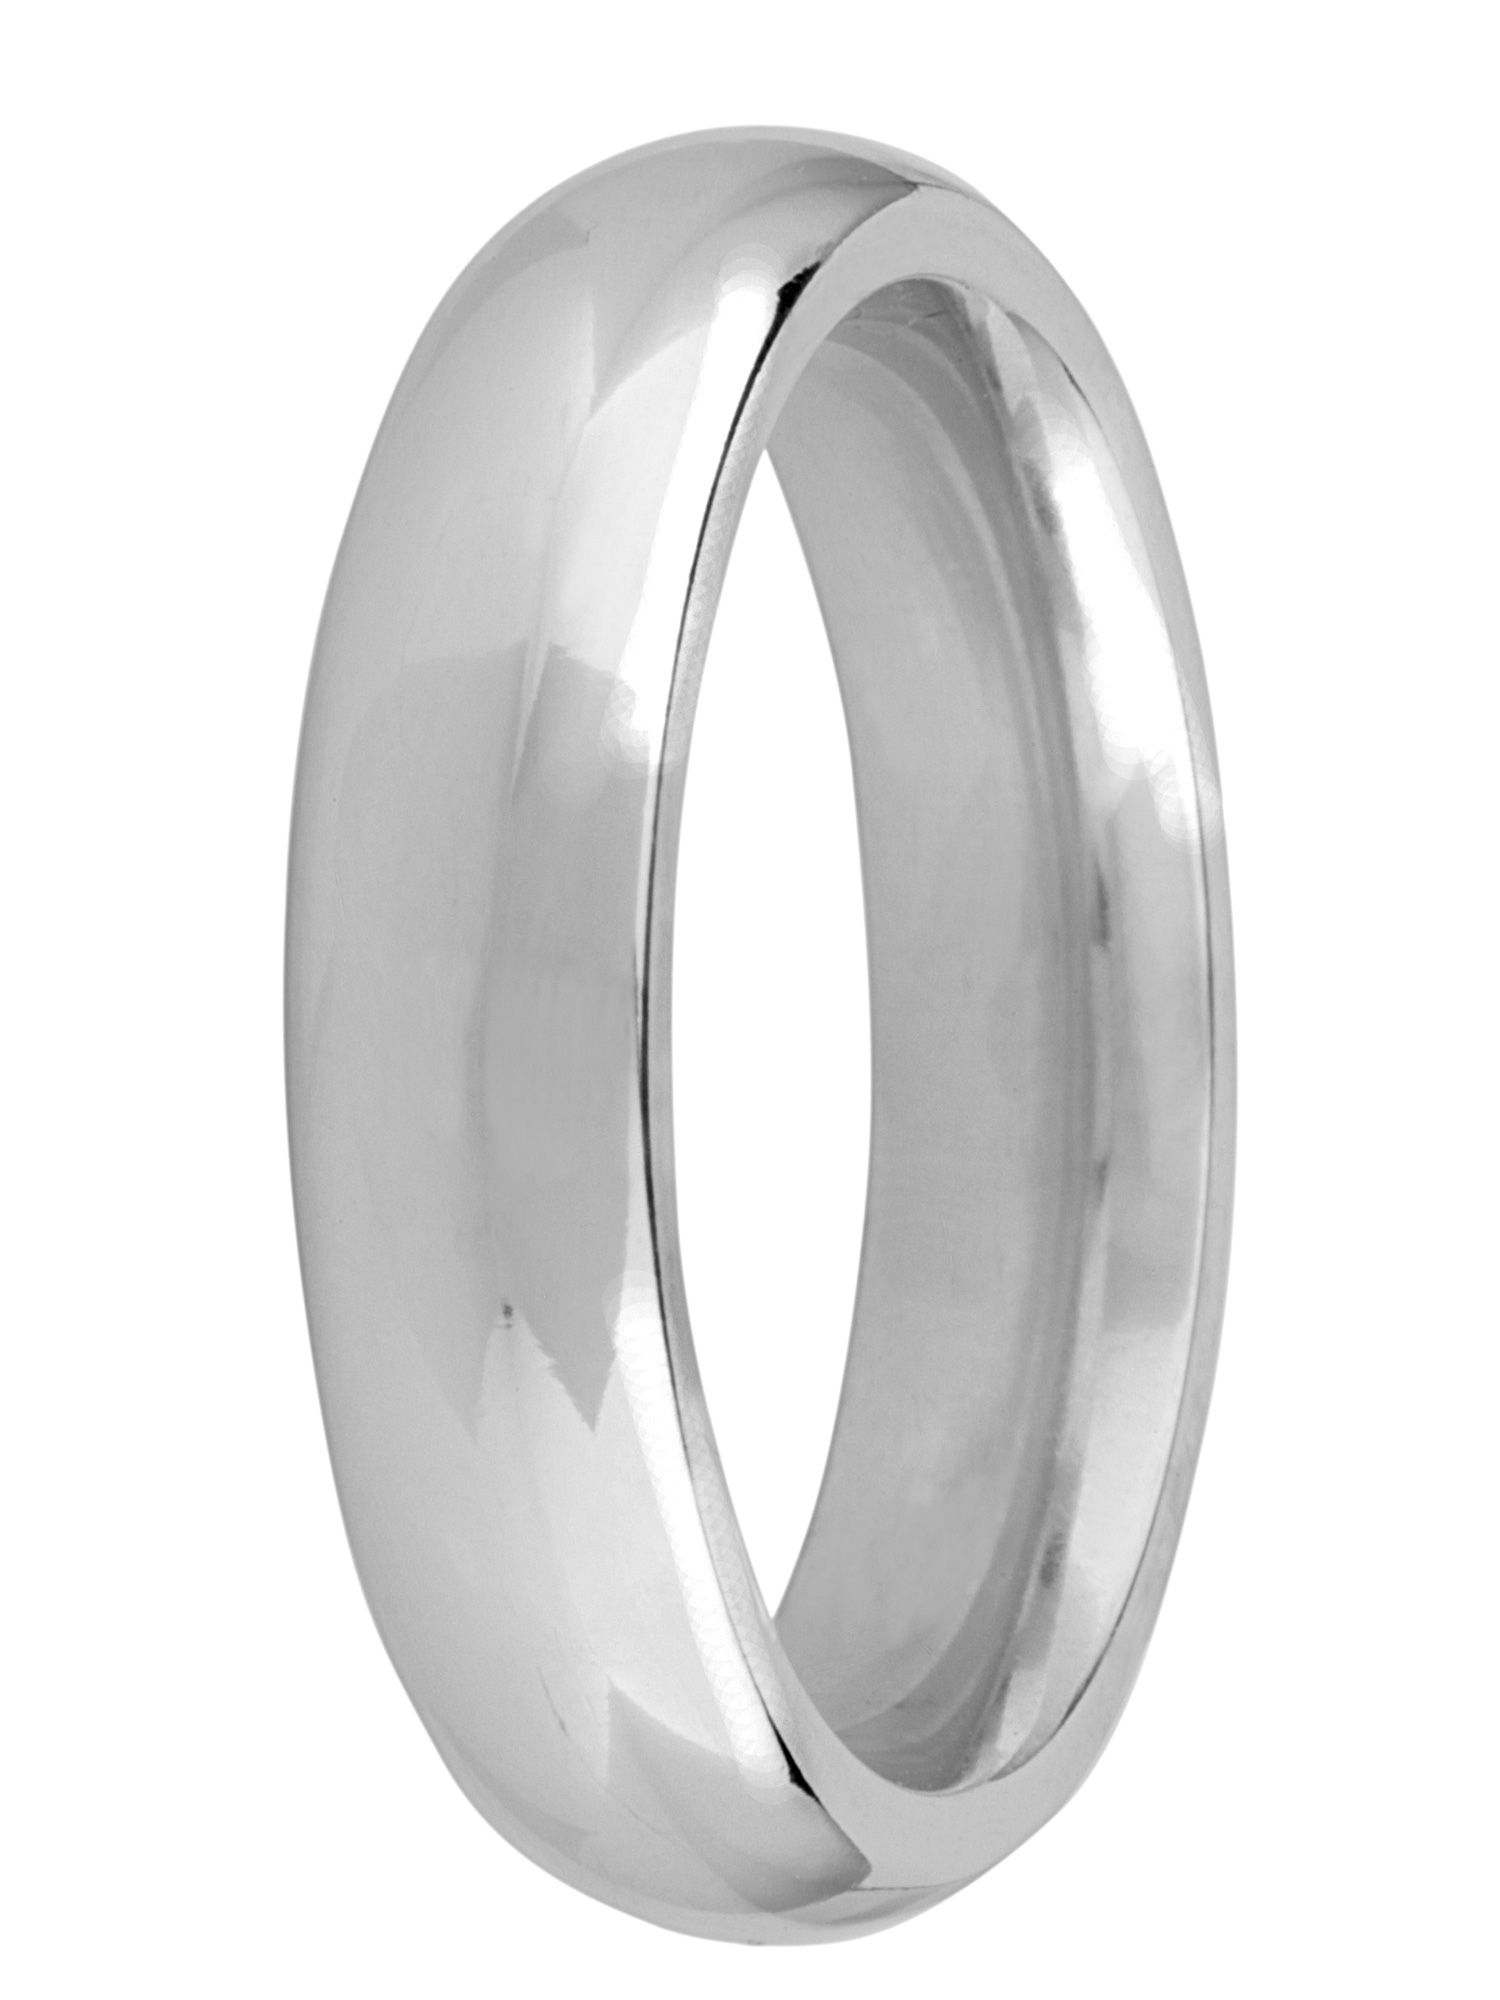 Grooms 9ct gold 5mm court wedding ring - White Gold